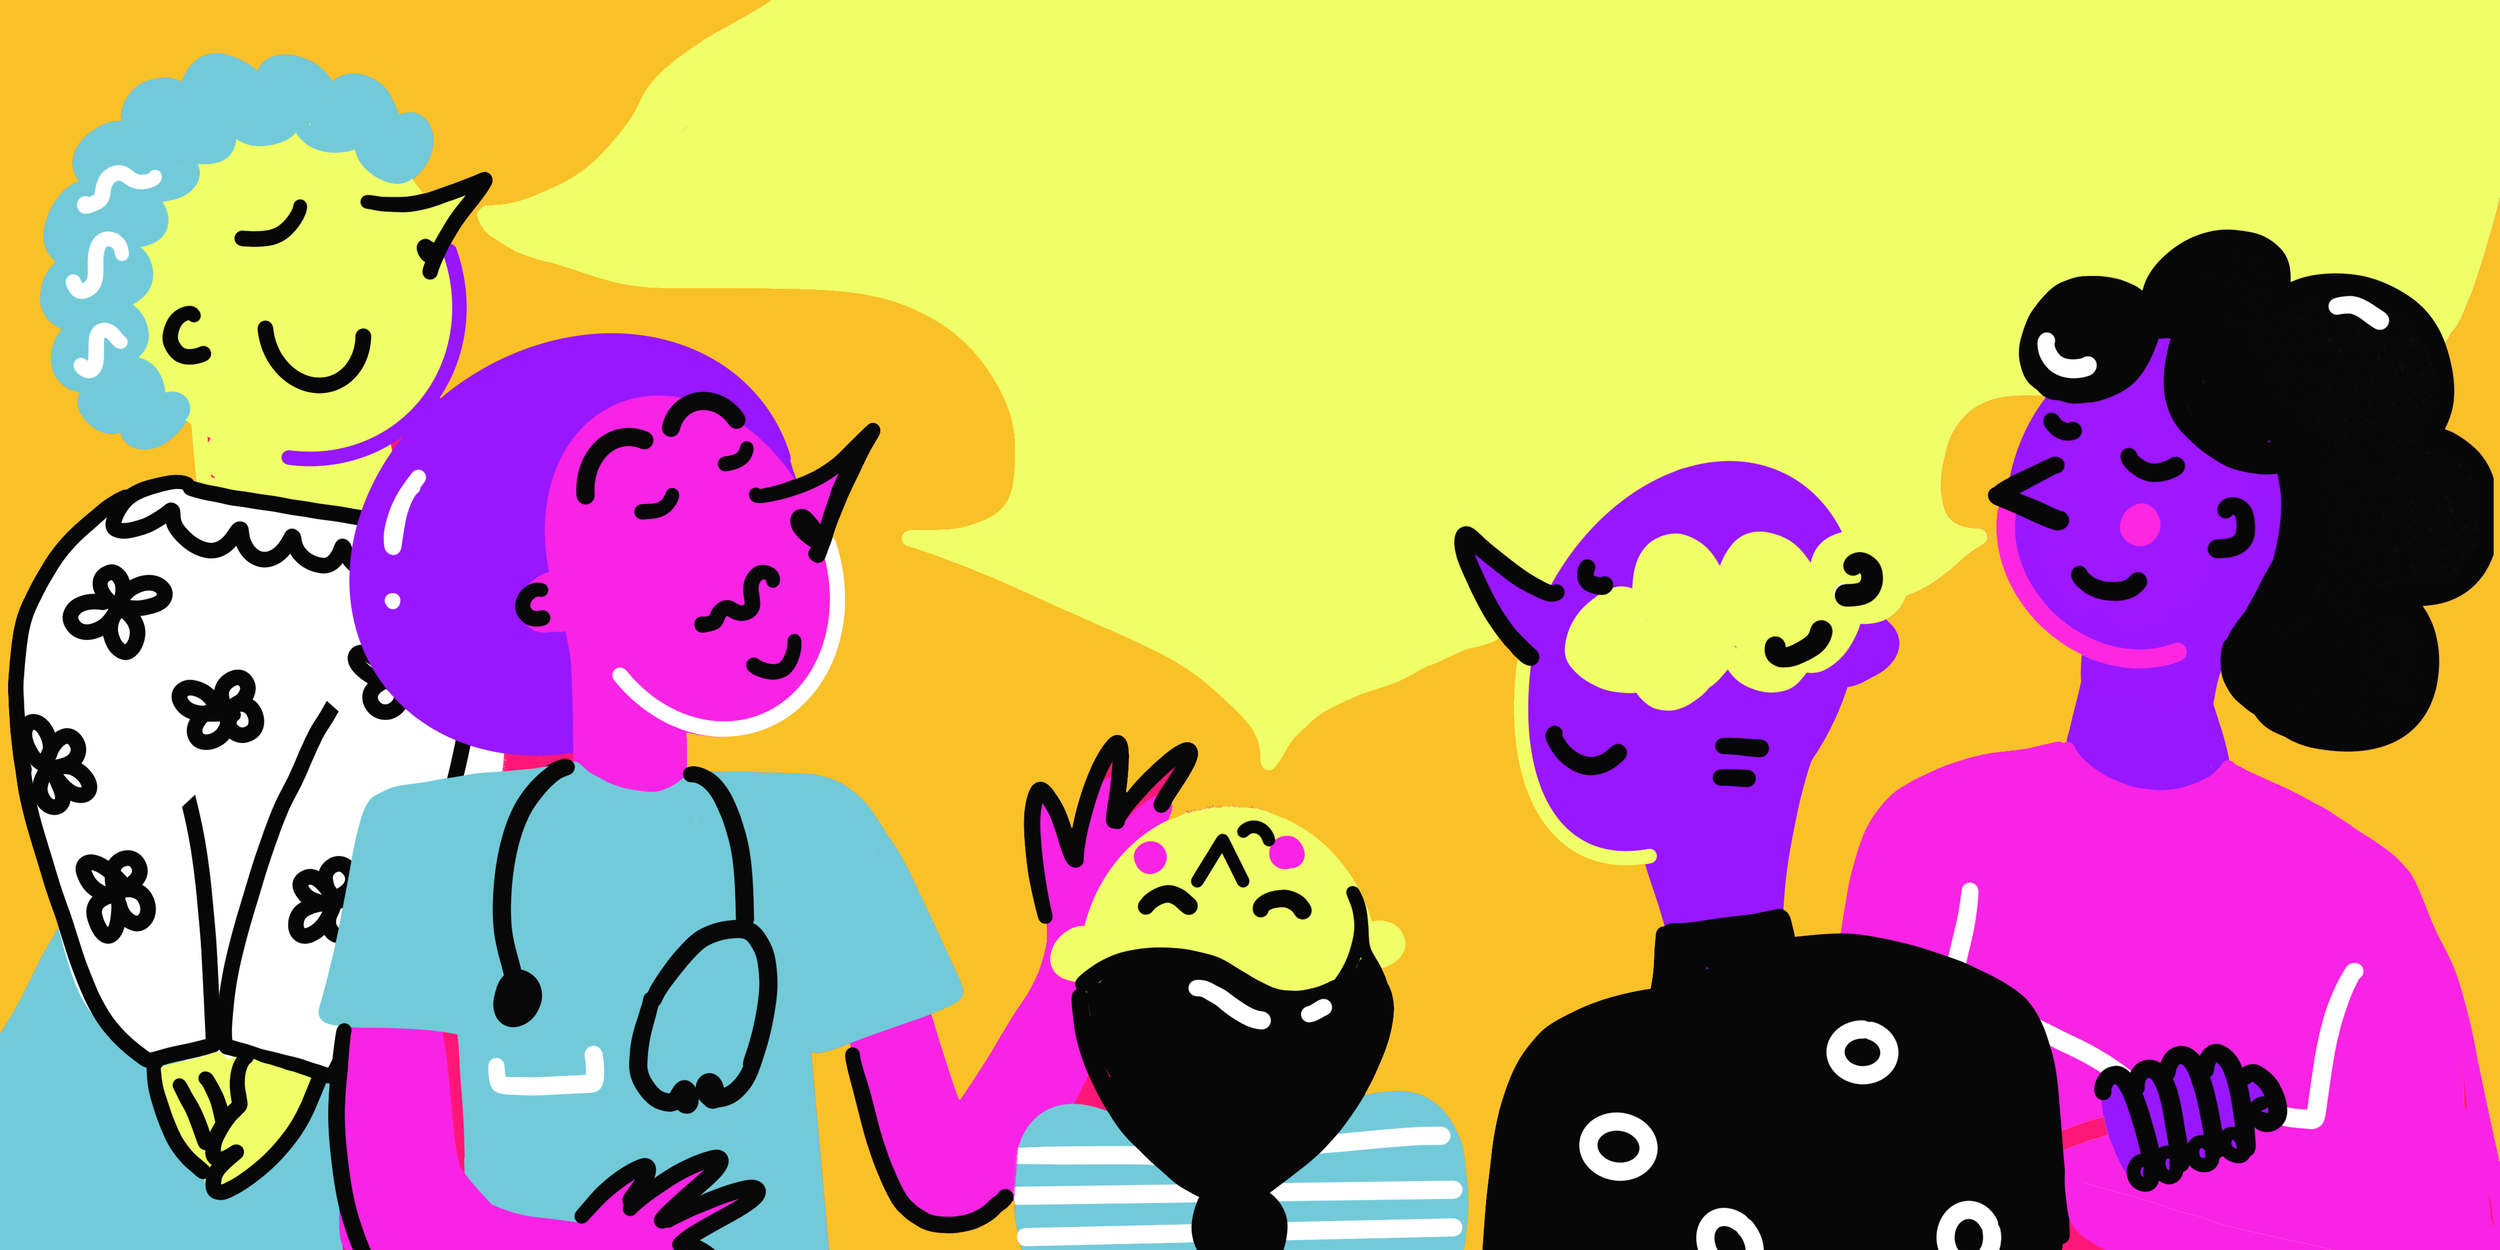 Five hand drawn characters smelling the air on a orange background with yellow mist